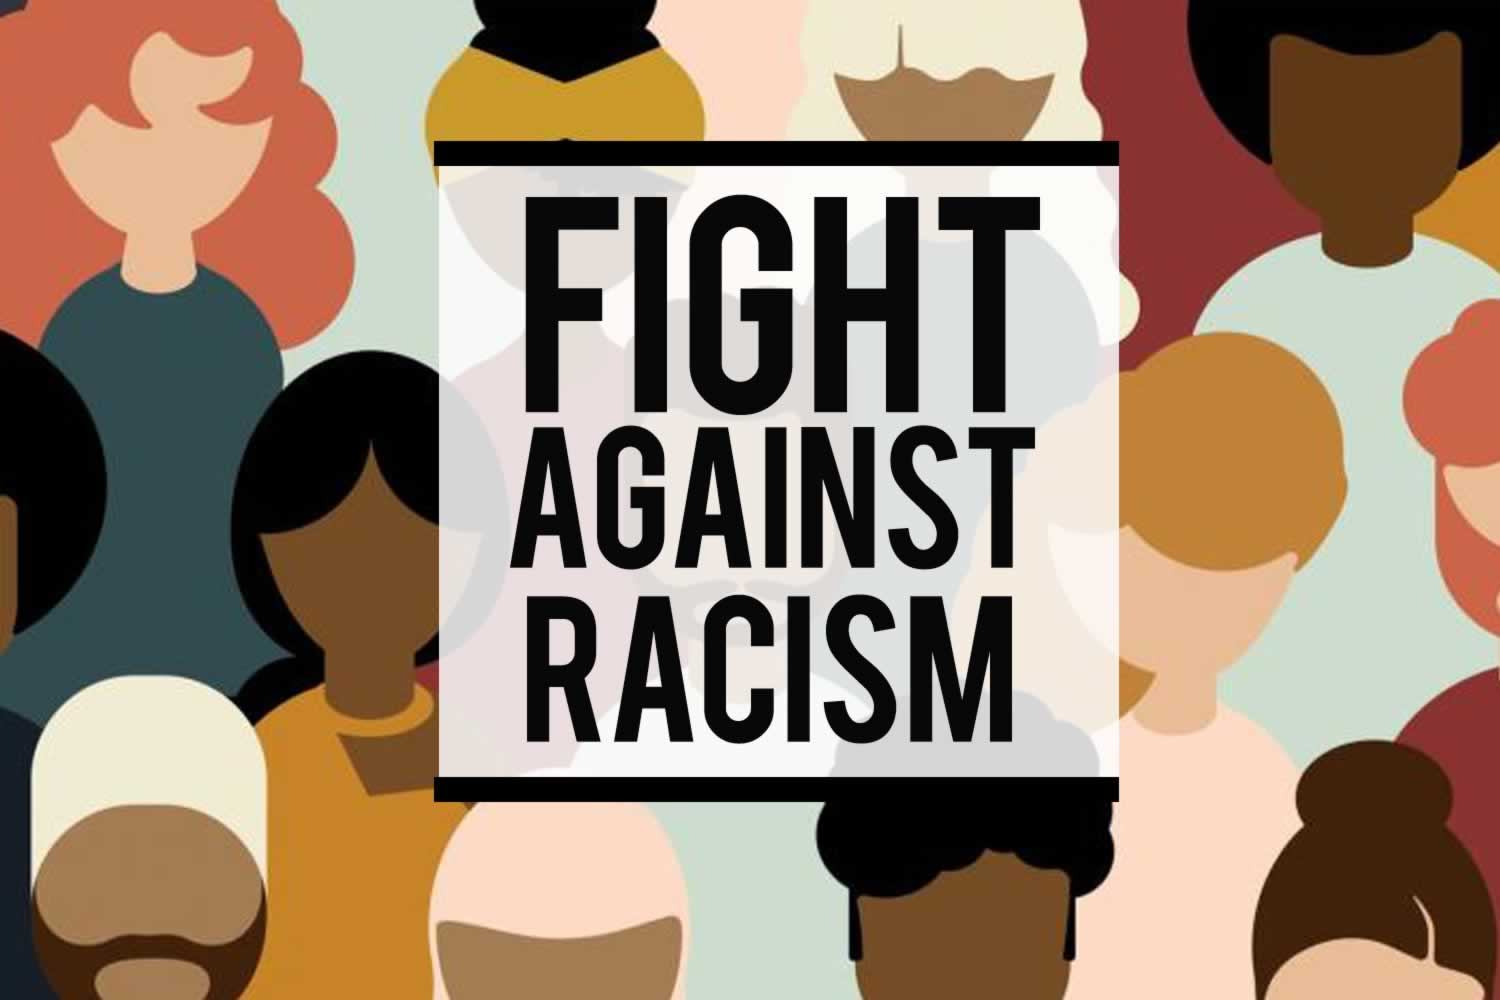 Fight Against Racism. Illustration of diverse group of people